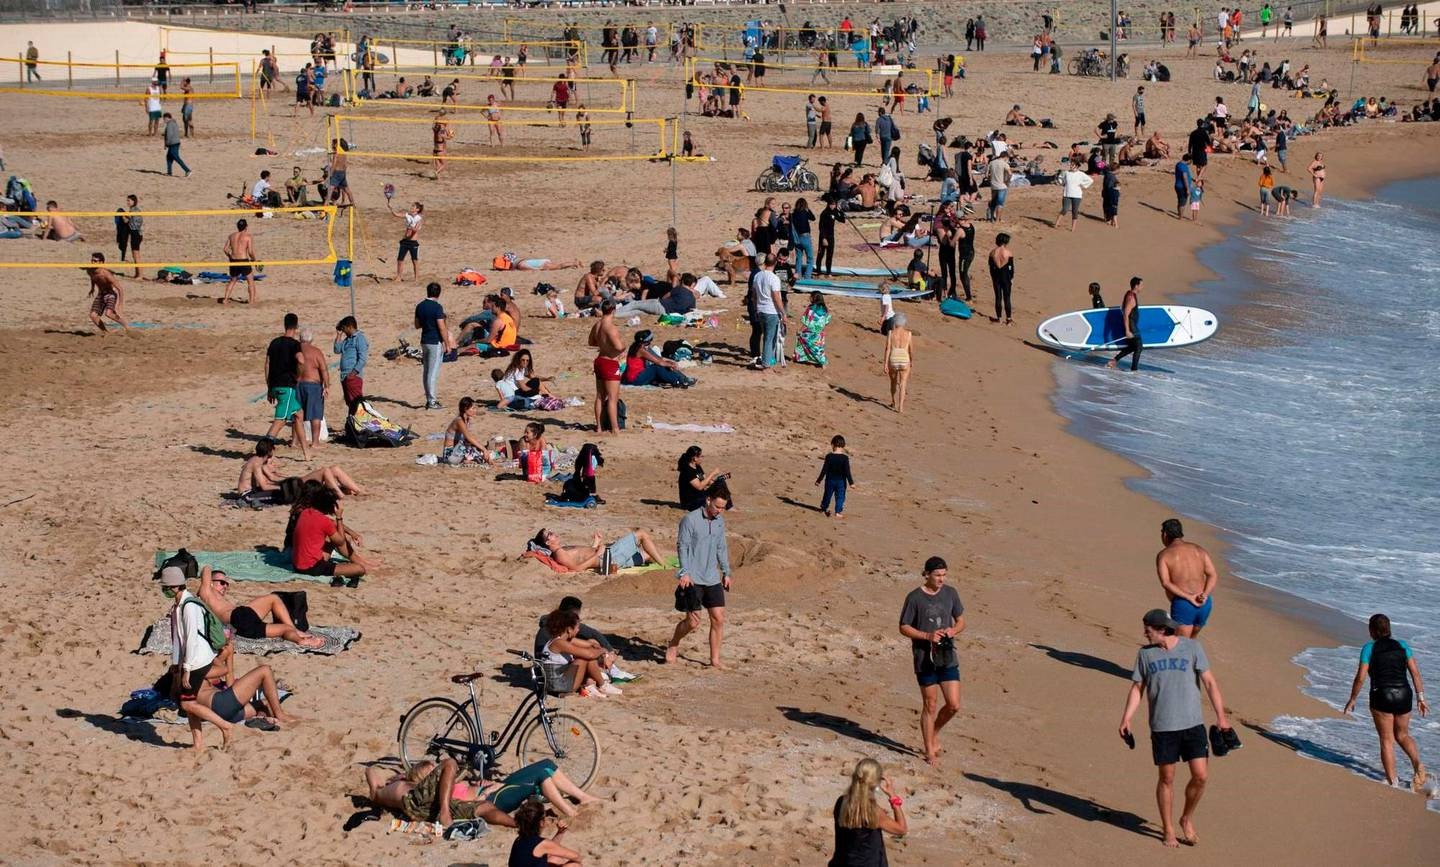 People sunbathe at the Bogatell beach in Barcelona, one of the several sands of the city that have been closed to leisure bathing amid the coronavirus panemic, in Barcelona on November 8, 2020. (Photo by Josep LAGO / AFP)